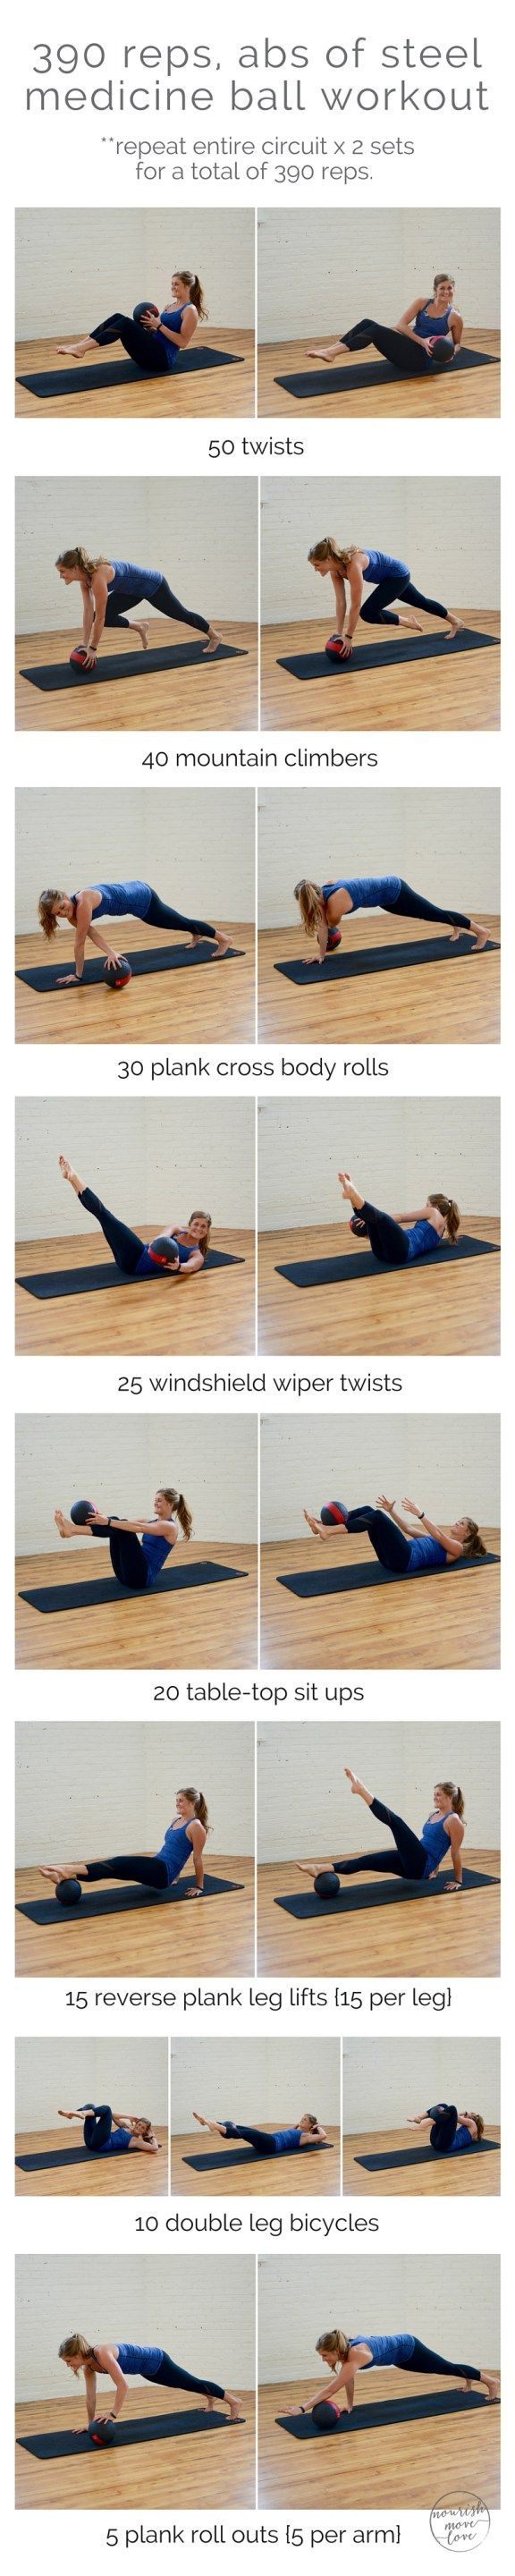 390 reps, abs of steel medicine ball workout   Incorporate this 390 rep medicine ball ab routine into your cardio and strength training to sculpt a tighter torso and flatter abs.